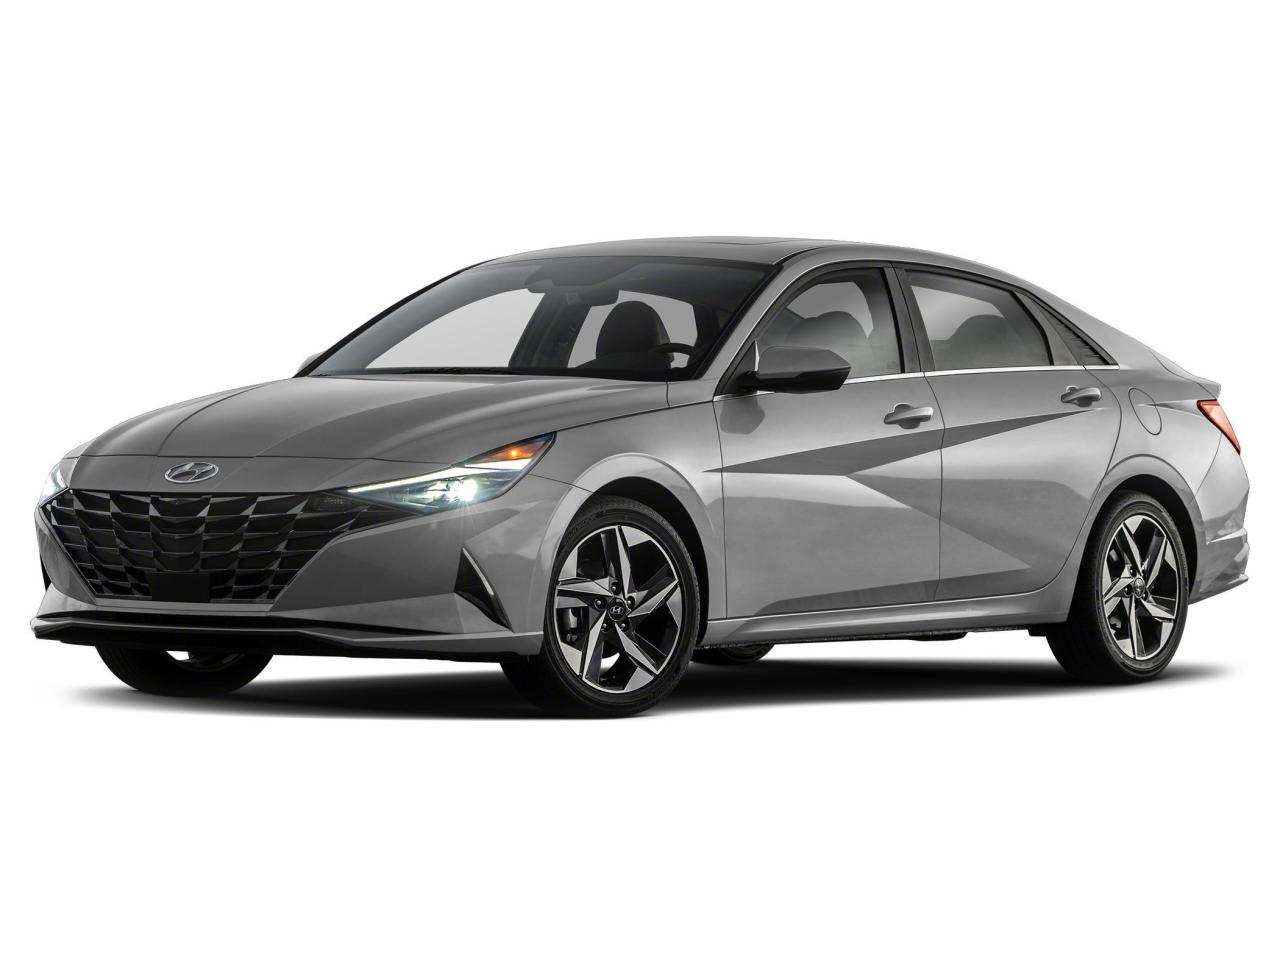 2021 Hyundai Elantra HYBRID ULTIMATE NO OPTIONS